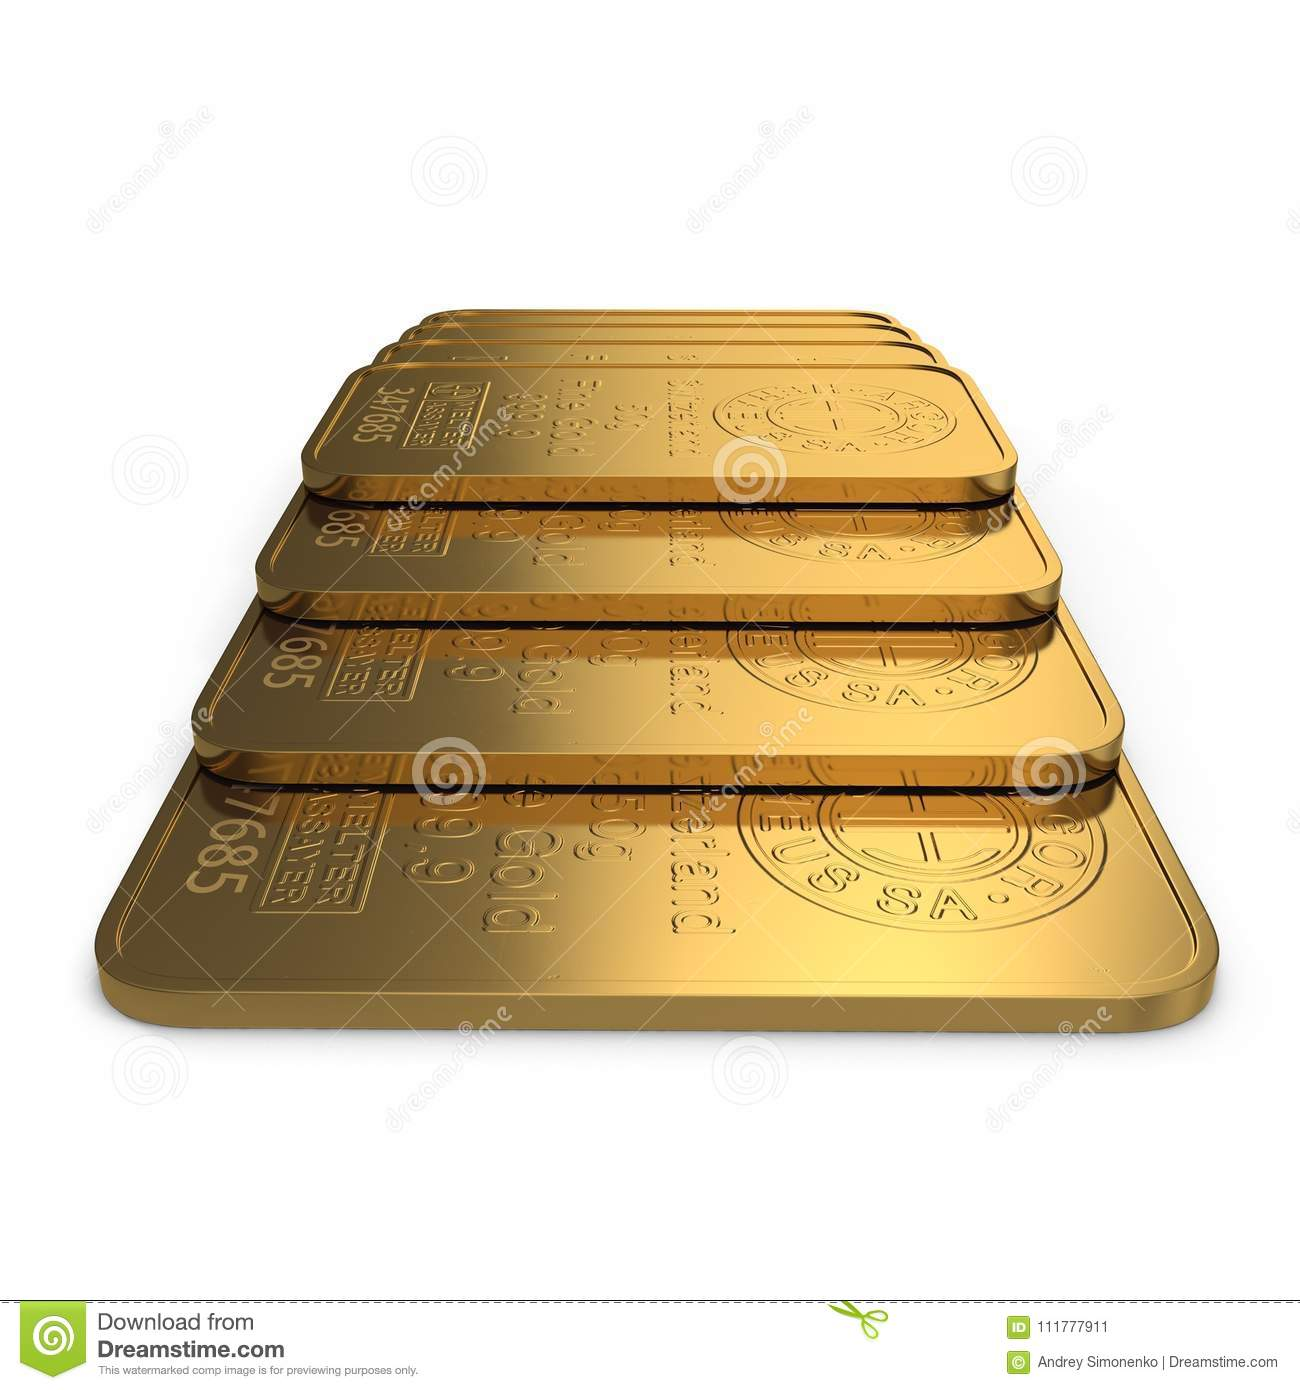 Gold bar 50g isolated on white. 3D illustration